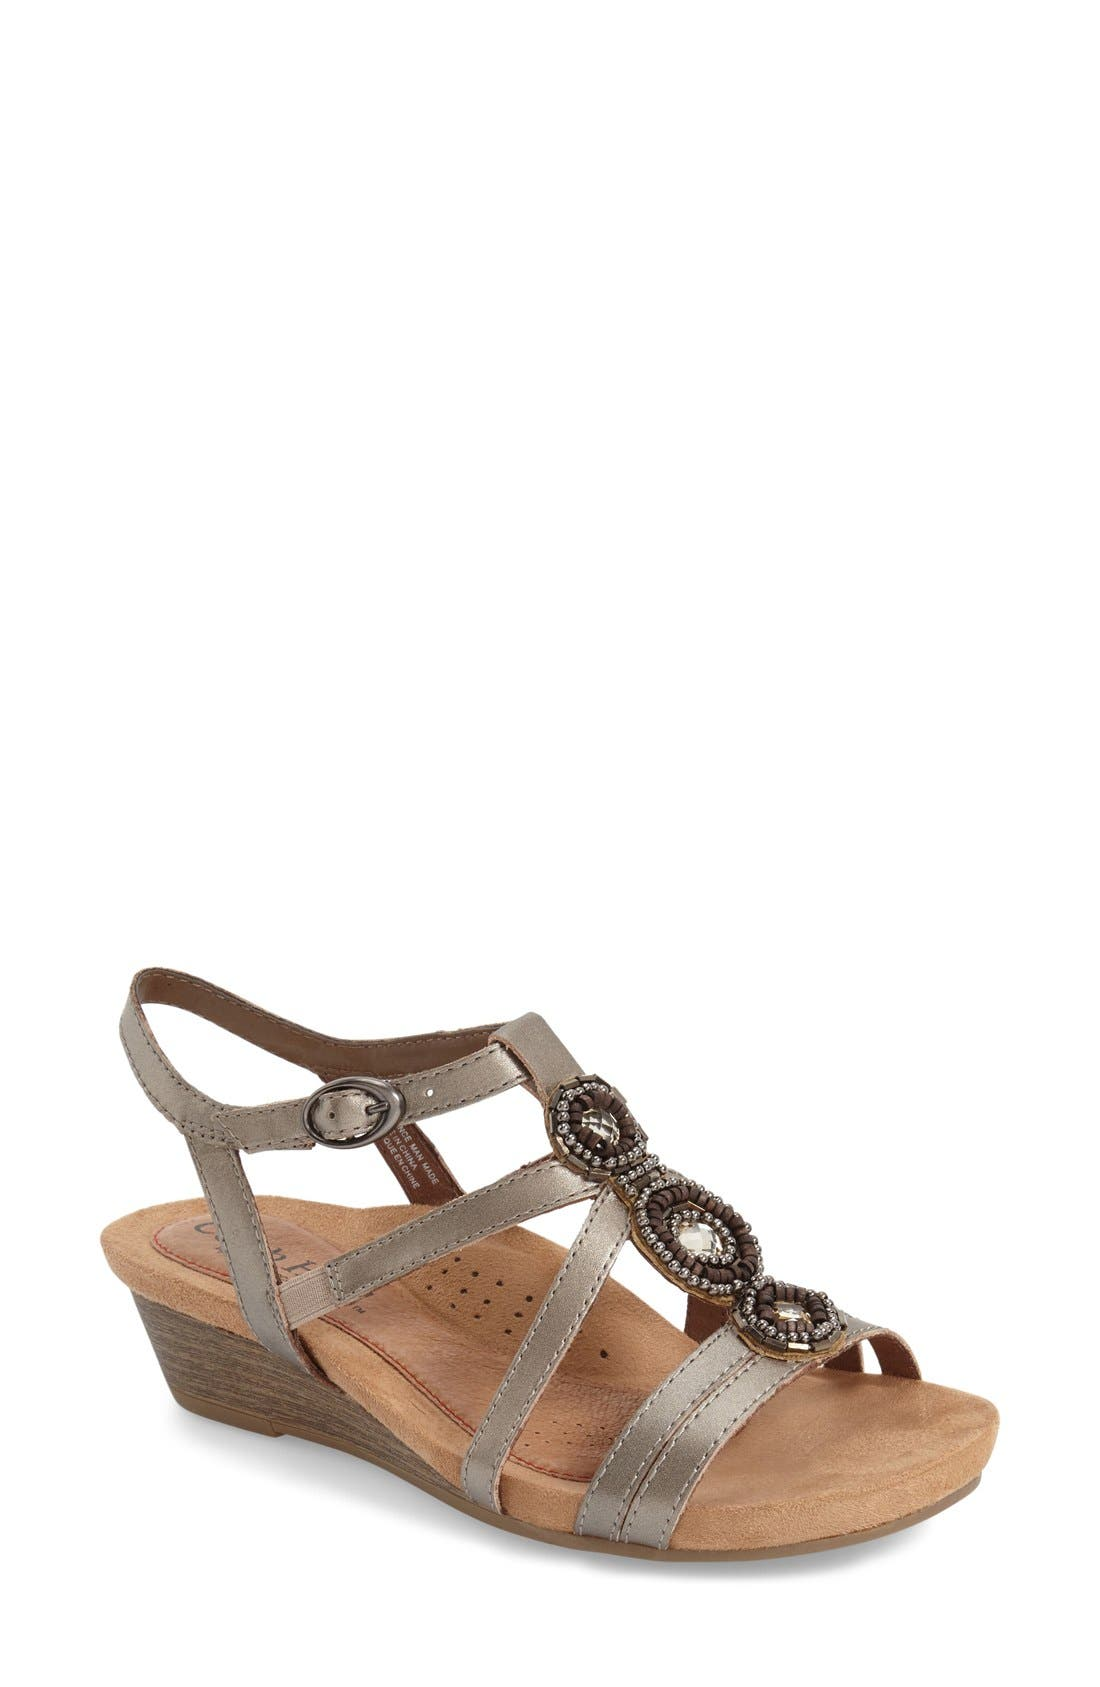 'Hannah' Leather Sandal,                             Main thumbnail 1, color,                             PEWTER LEATHER